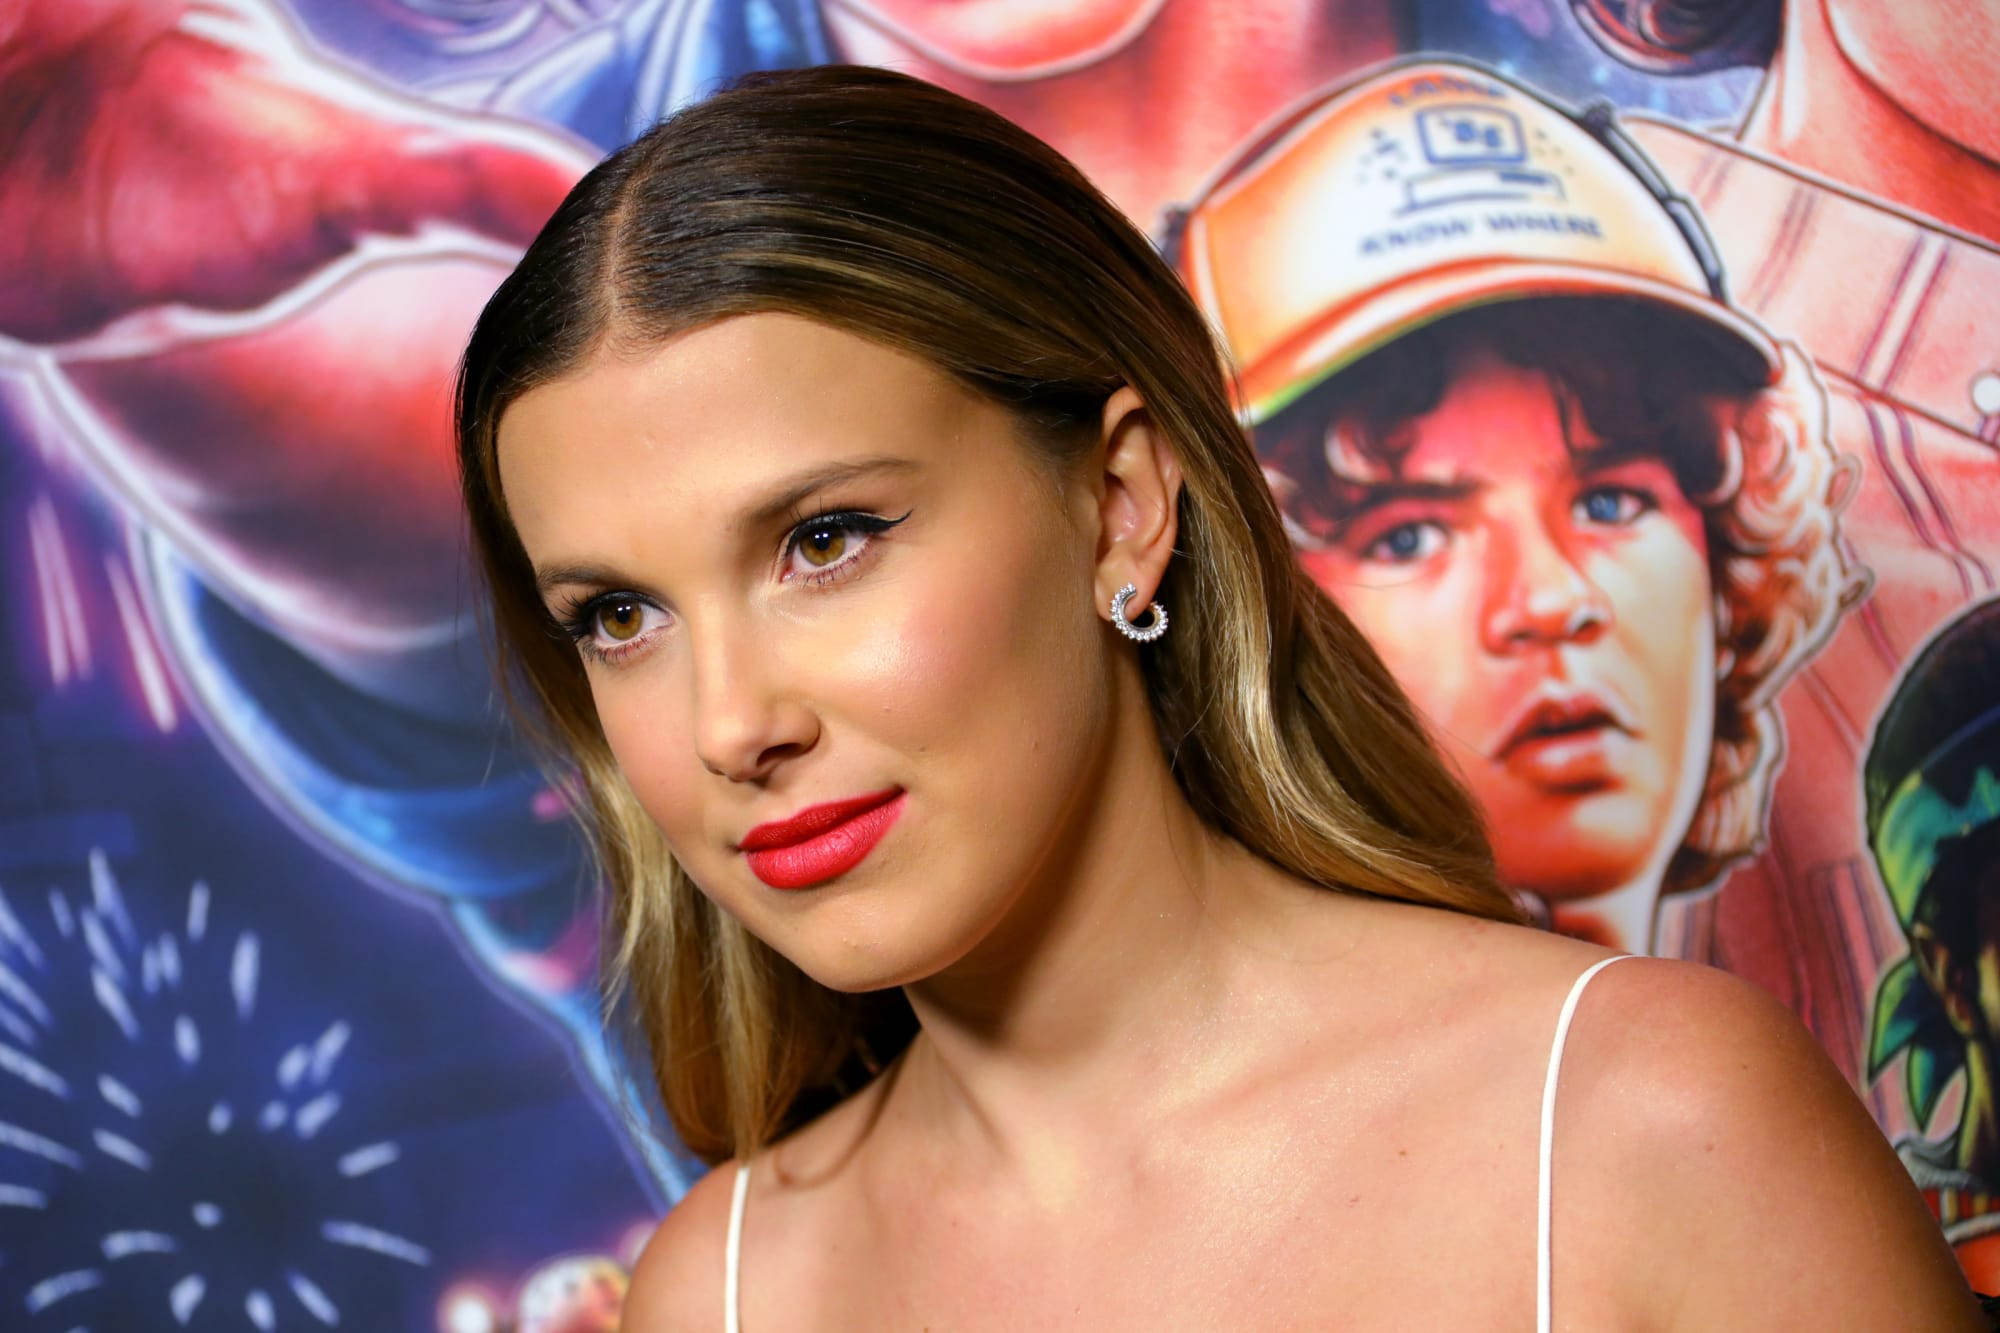 X-Men: Stranger Things star Millie Bobby Brown suits up as Phoenix in stunning new image